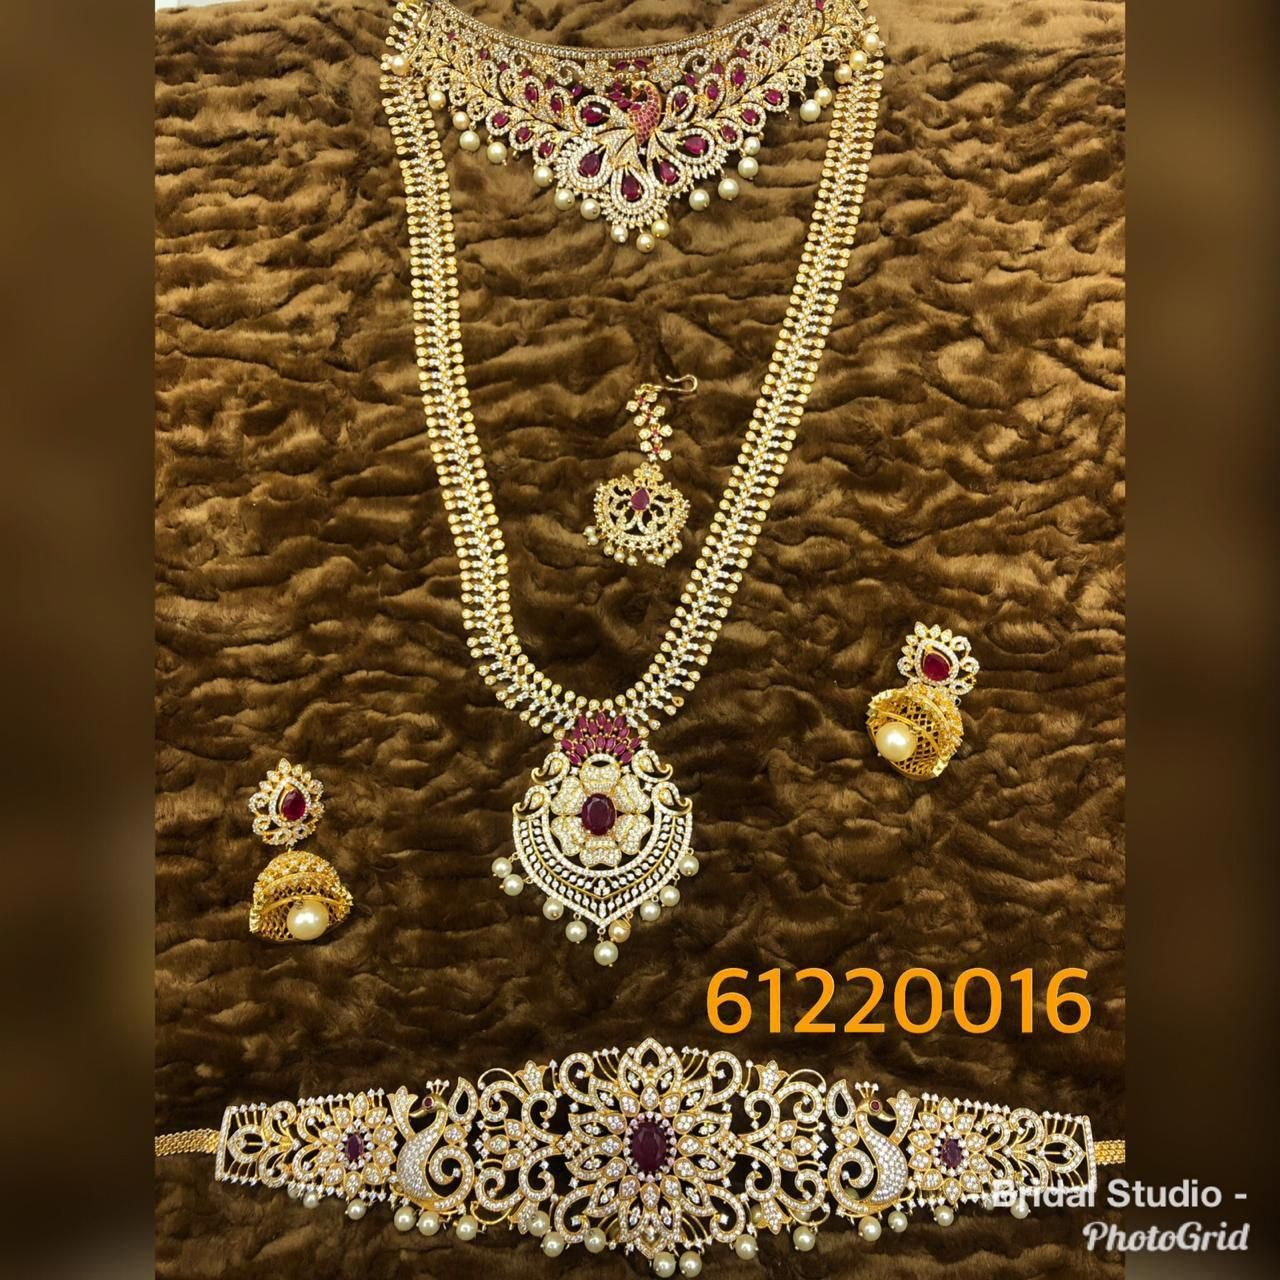 Bridal Jewellery Sets On Rent In Bangalore Find Wedding Jewellery On Rent Jewelle Bridal Fashion Jewelry Bridesmaid Jewelry Sets Indian Bridal Jewelry Sets